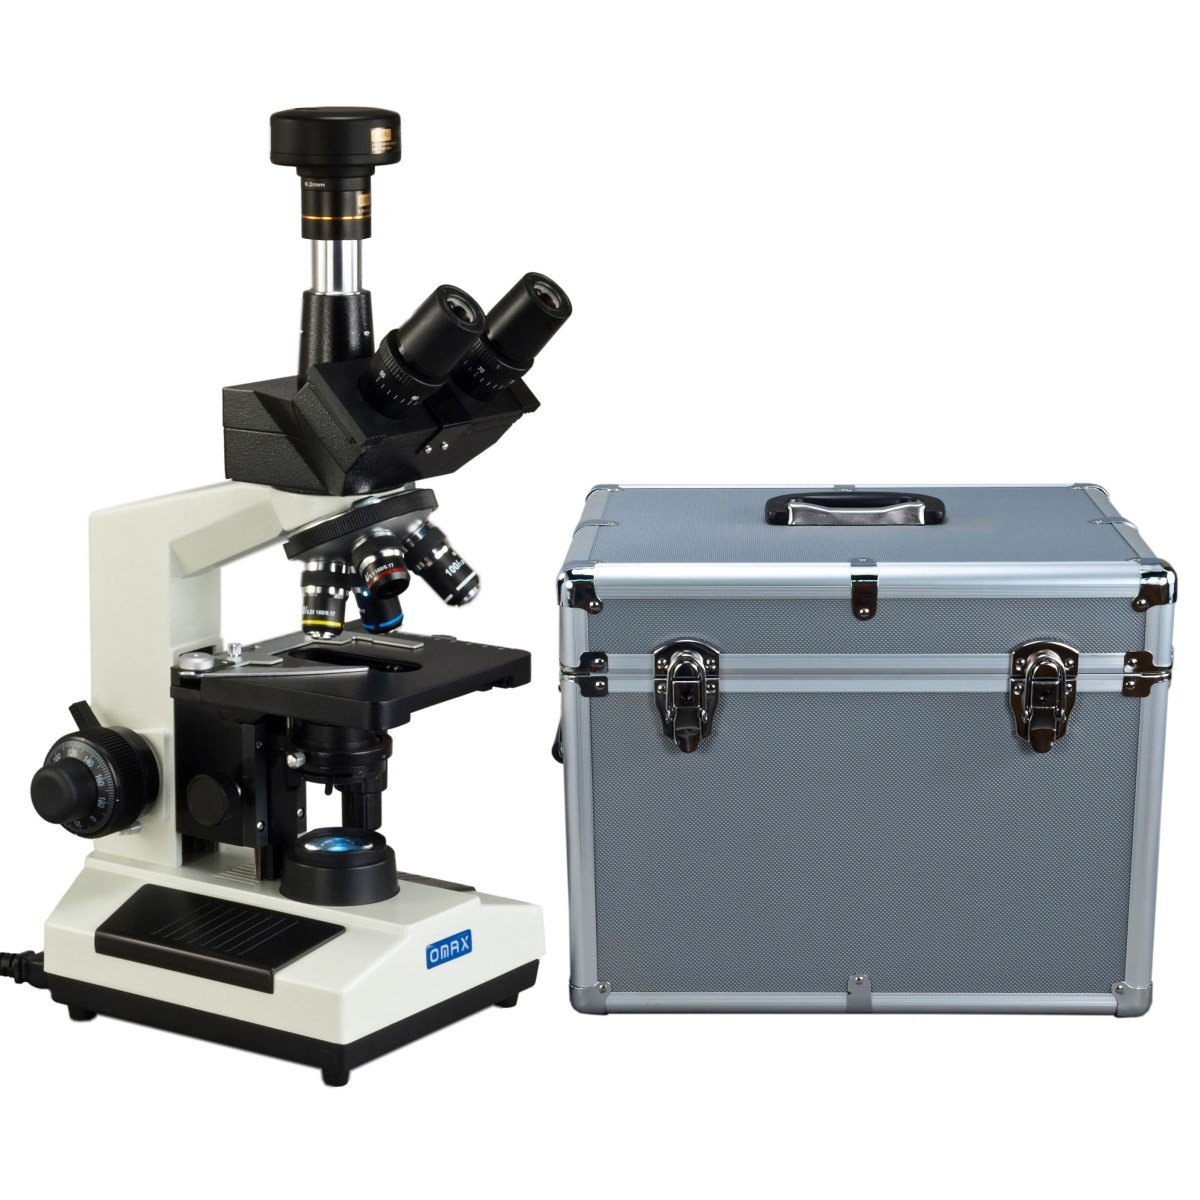 OMAX 40X-1600X Trinocular Compound LED Microscope w 9MP Digital Camera & Aluminum Carrying Case by OMAX